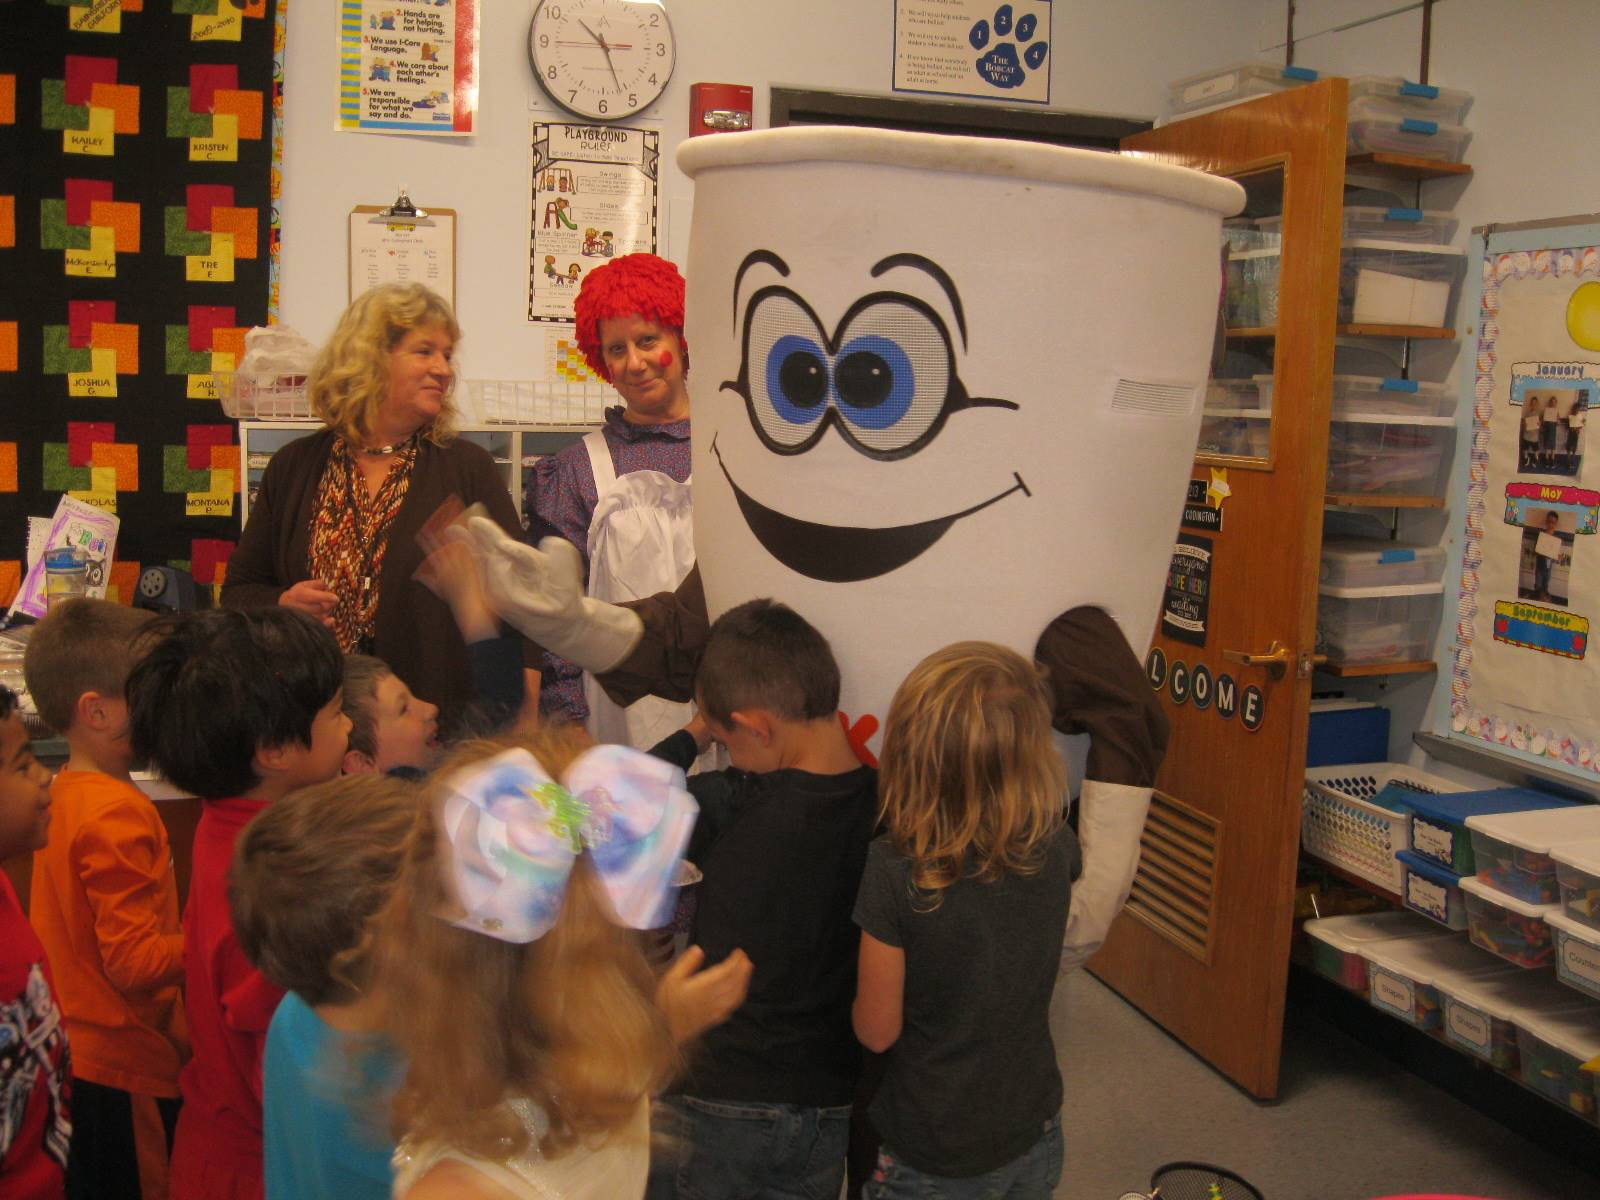 Dunkin donut man gives hugs to students.